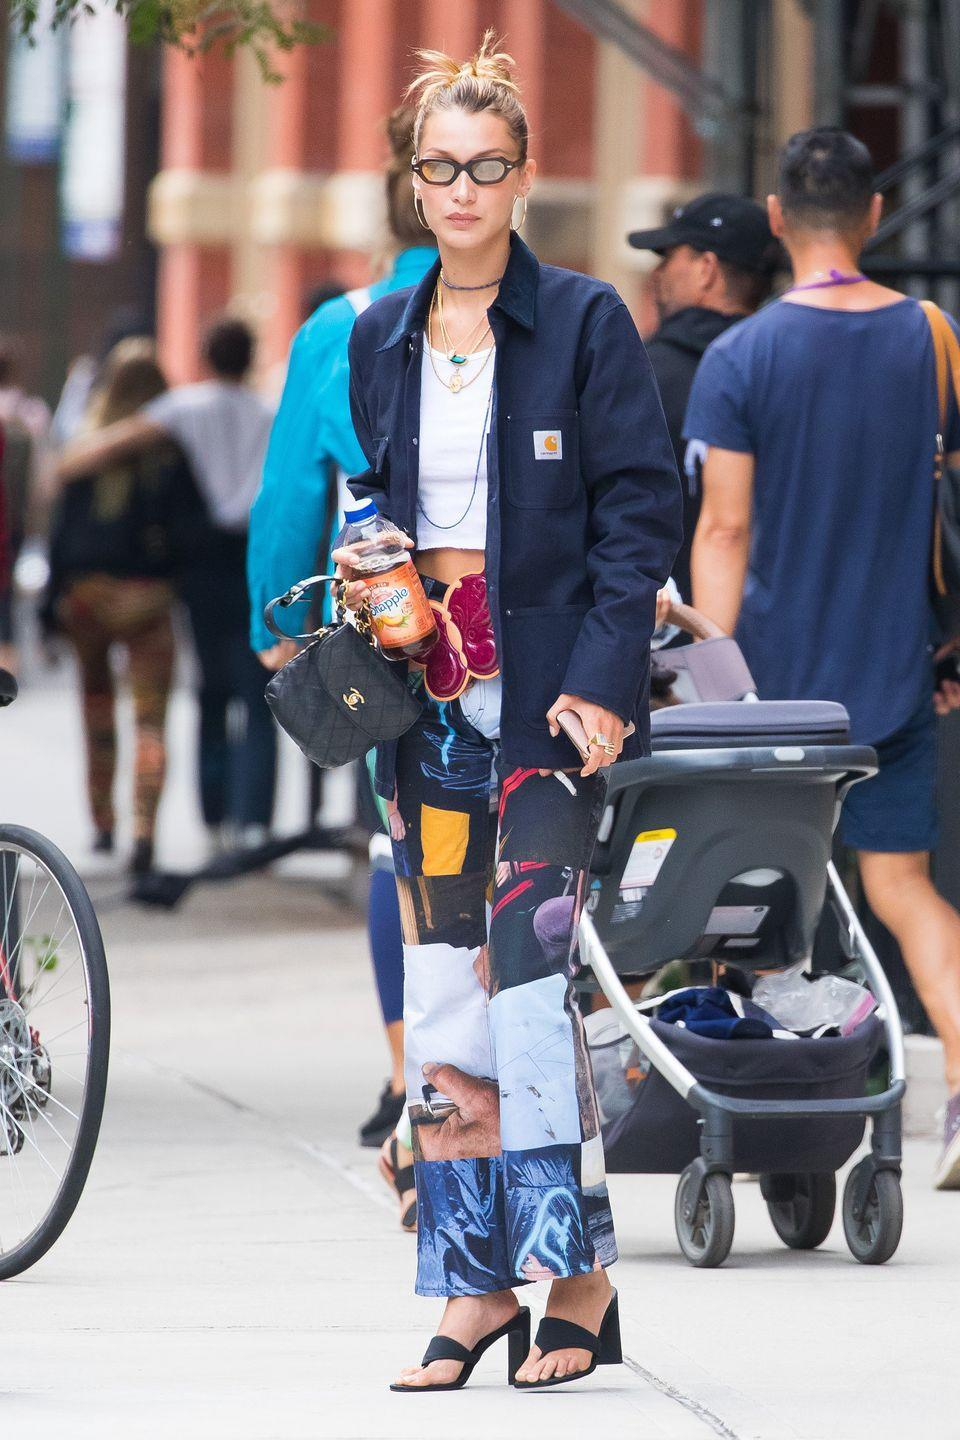 """<p>In a white crop top, navy blue Carhartt button-down, patterned pants, a mini Chanel bag, Mercii's <a href=""""https://www.mercii.com/collections/new-collection/products/dusk-till-dawn-pendant"""" rel=""""nofollow noopener"""" target=""""_blank"""" data-ylk=""""slk:Dusk till Dawn"""" class=""""link rapid-noclick-resp"""">Dusk till Dawn</a> necklace, shades, and Bevza black heeled sandals.</p>"""